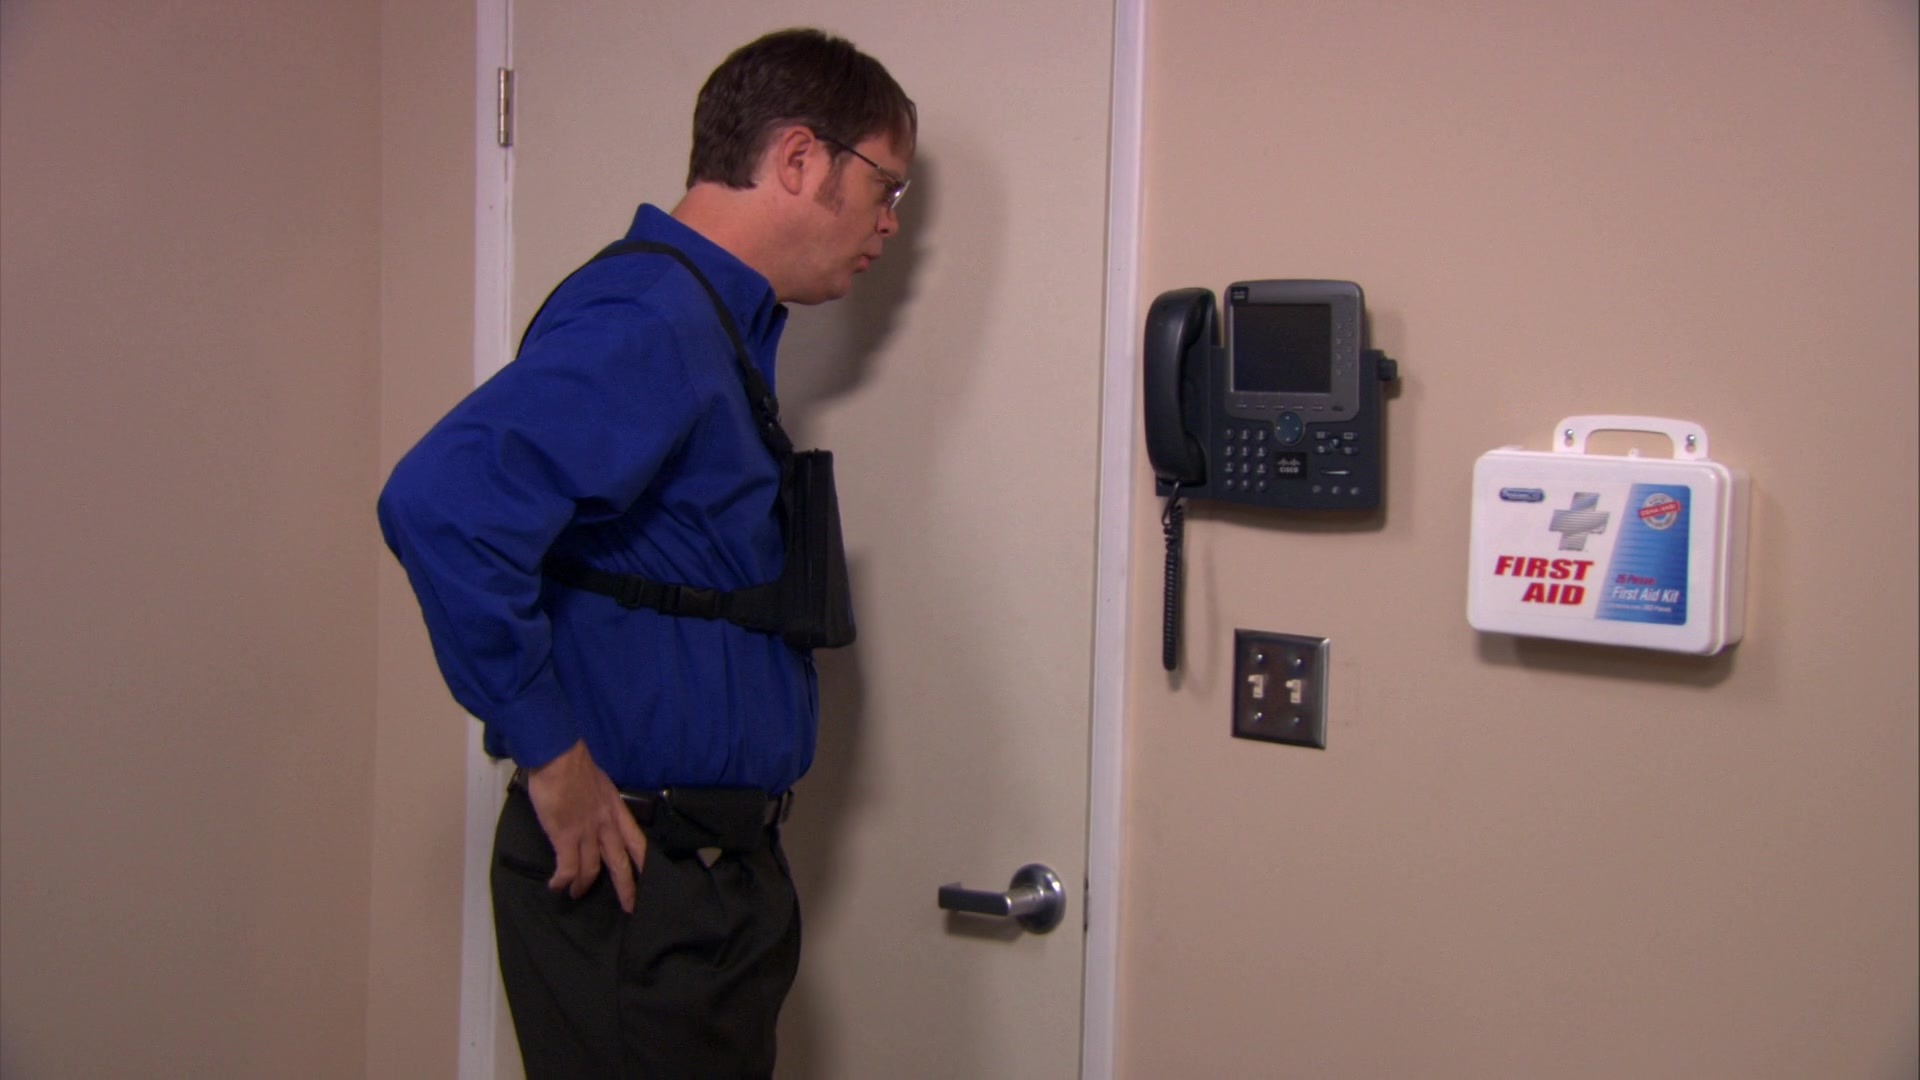 Cisco Phone in The Office – Season 8, Episode 17,